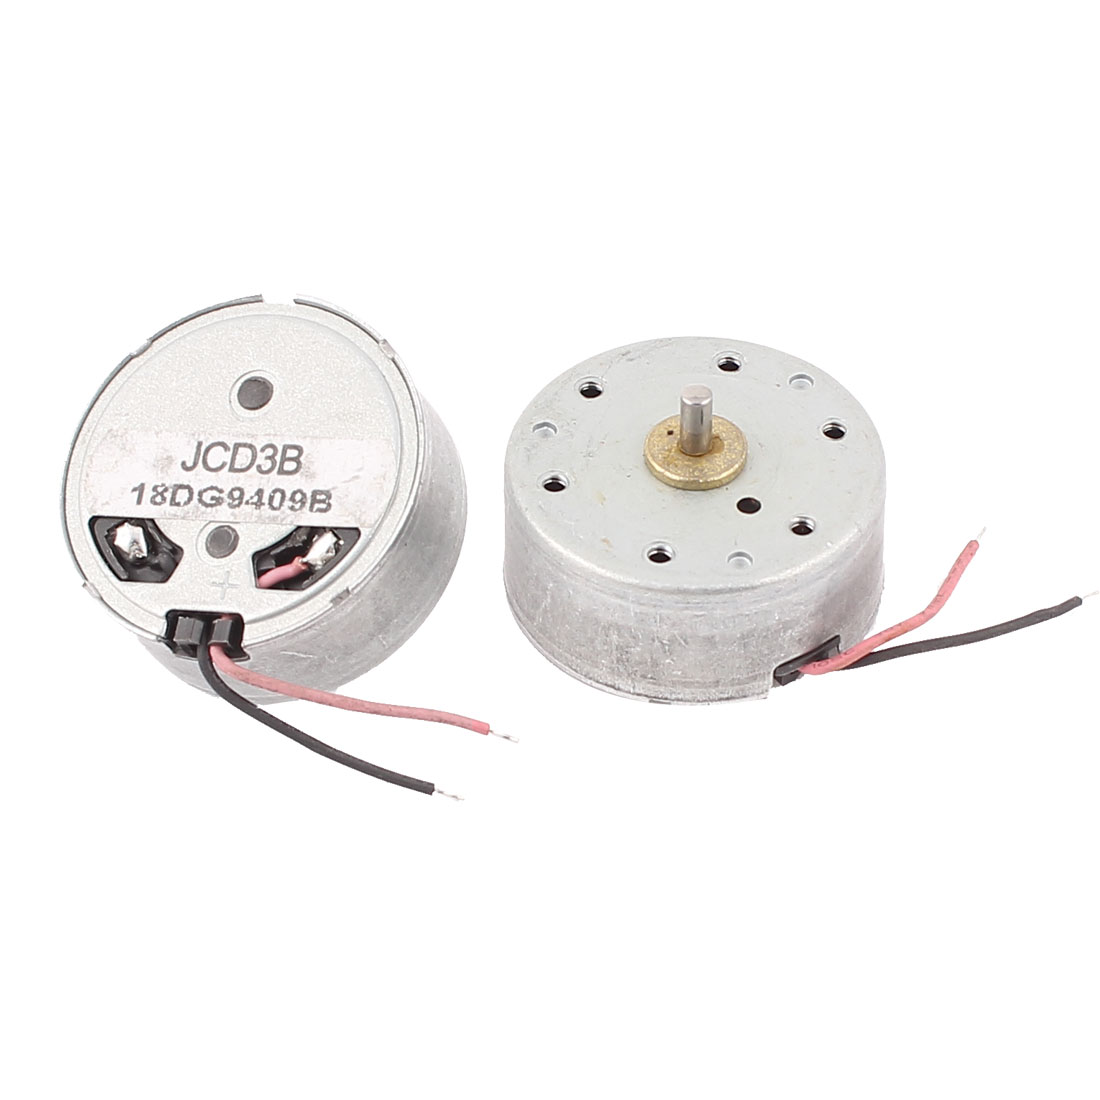 2 Pcs DC 1.5-4.5V 3200RPM Electric Mini Motor Repair Parts for CD DVD Player